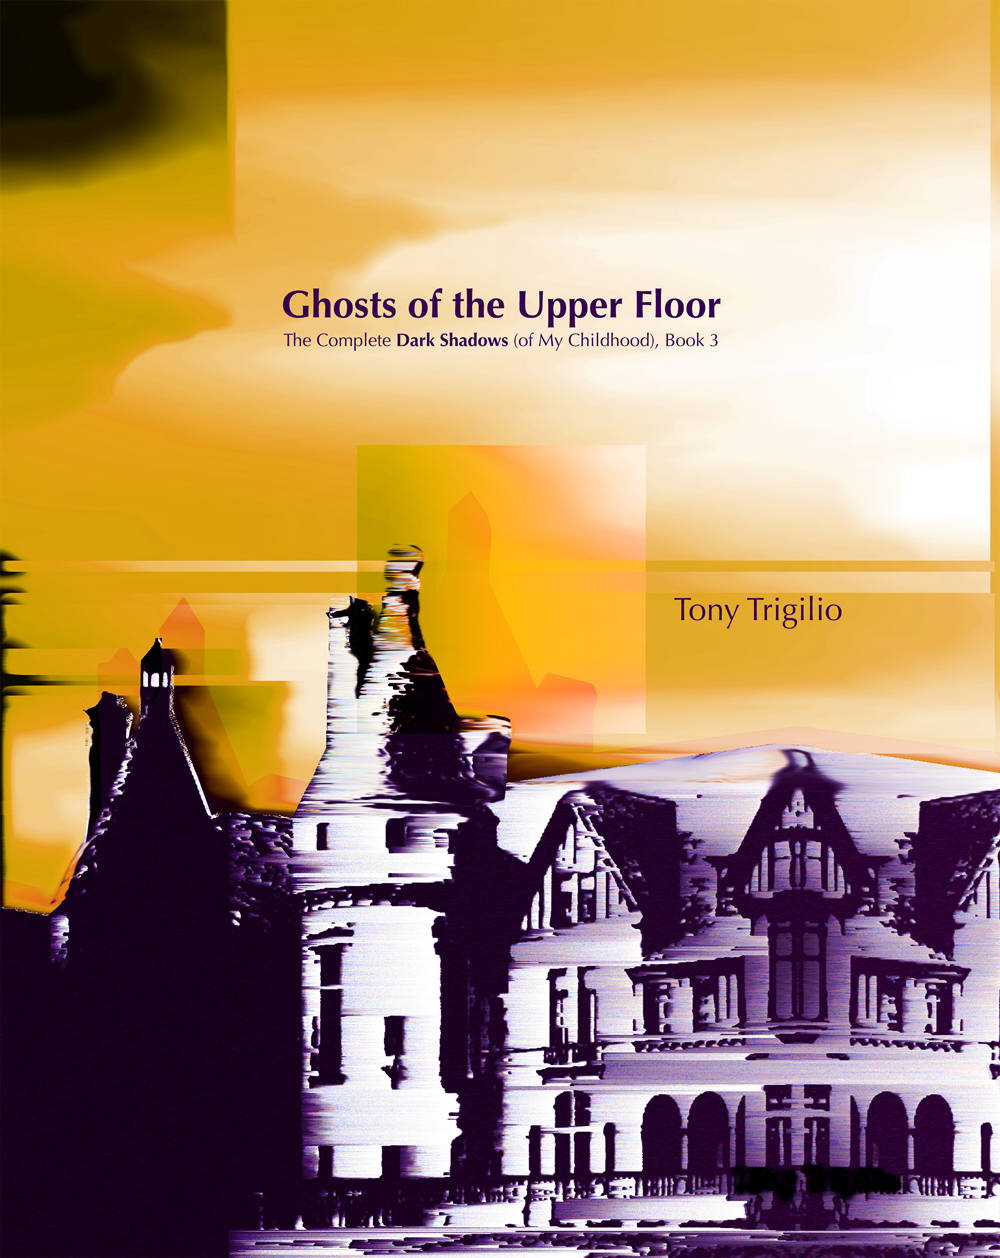 Ghosts of the Upper Floor: The Complete Dark Shadows (of My Childhood), Book 3